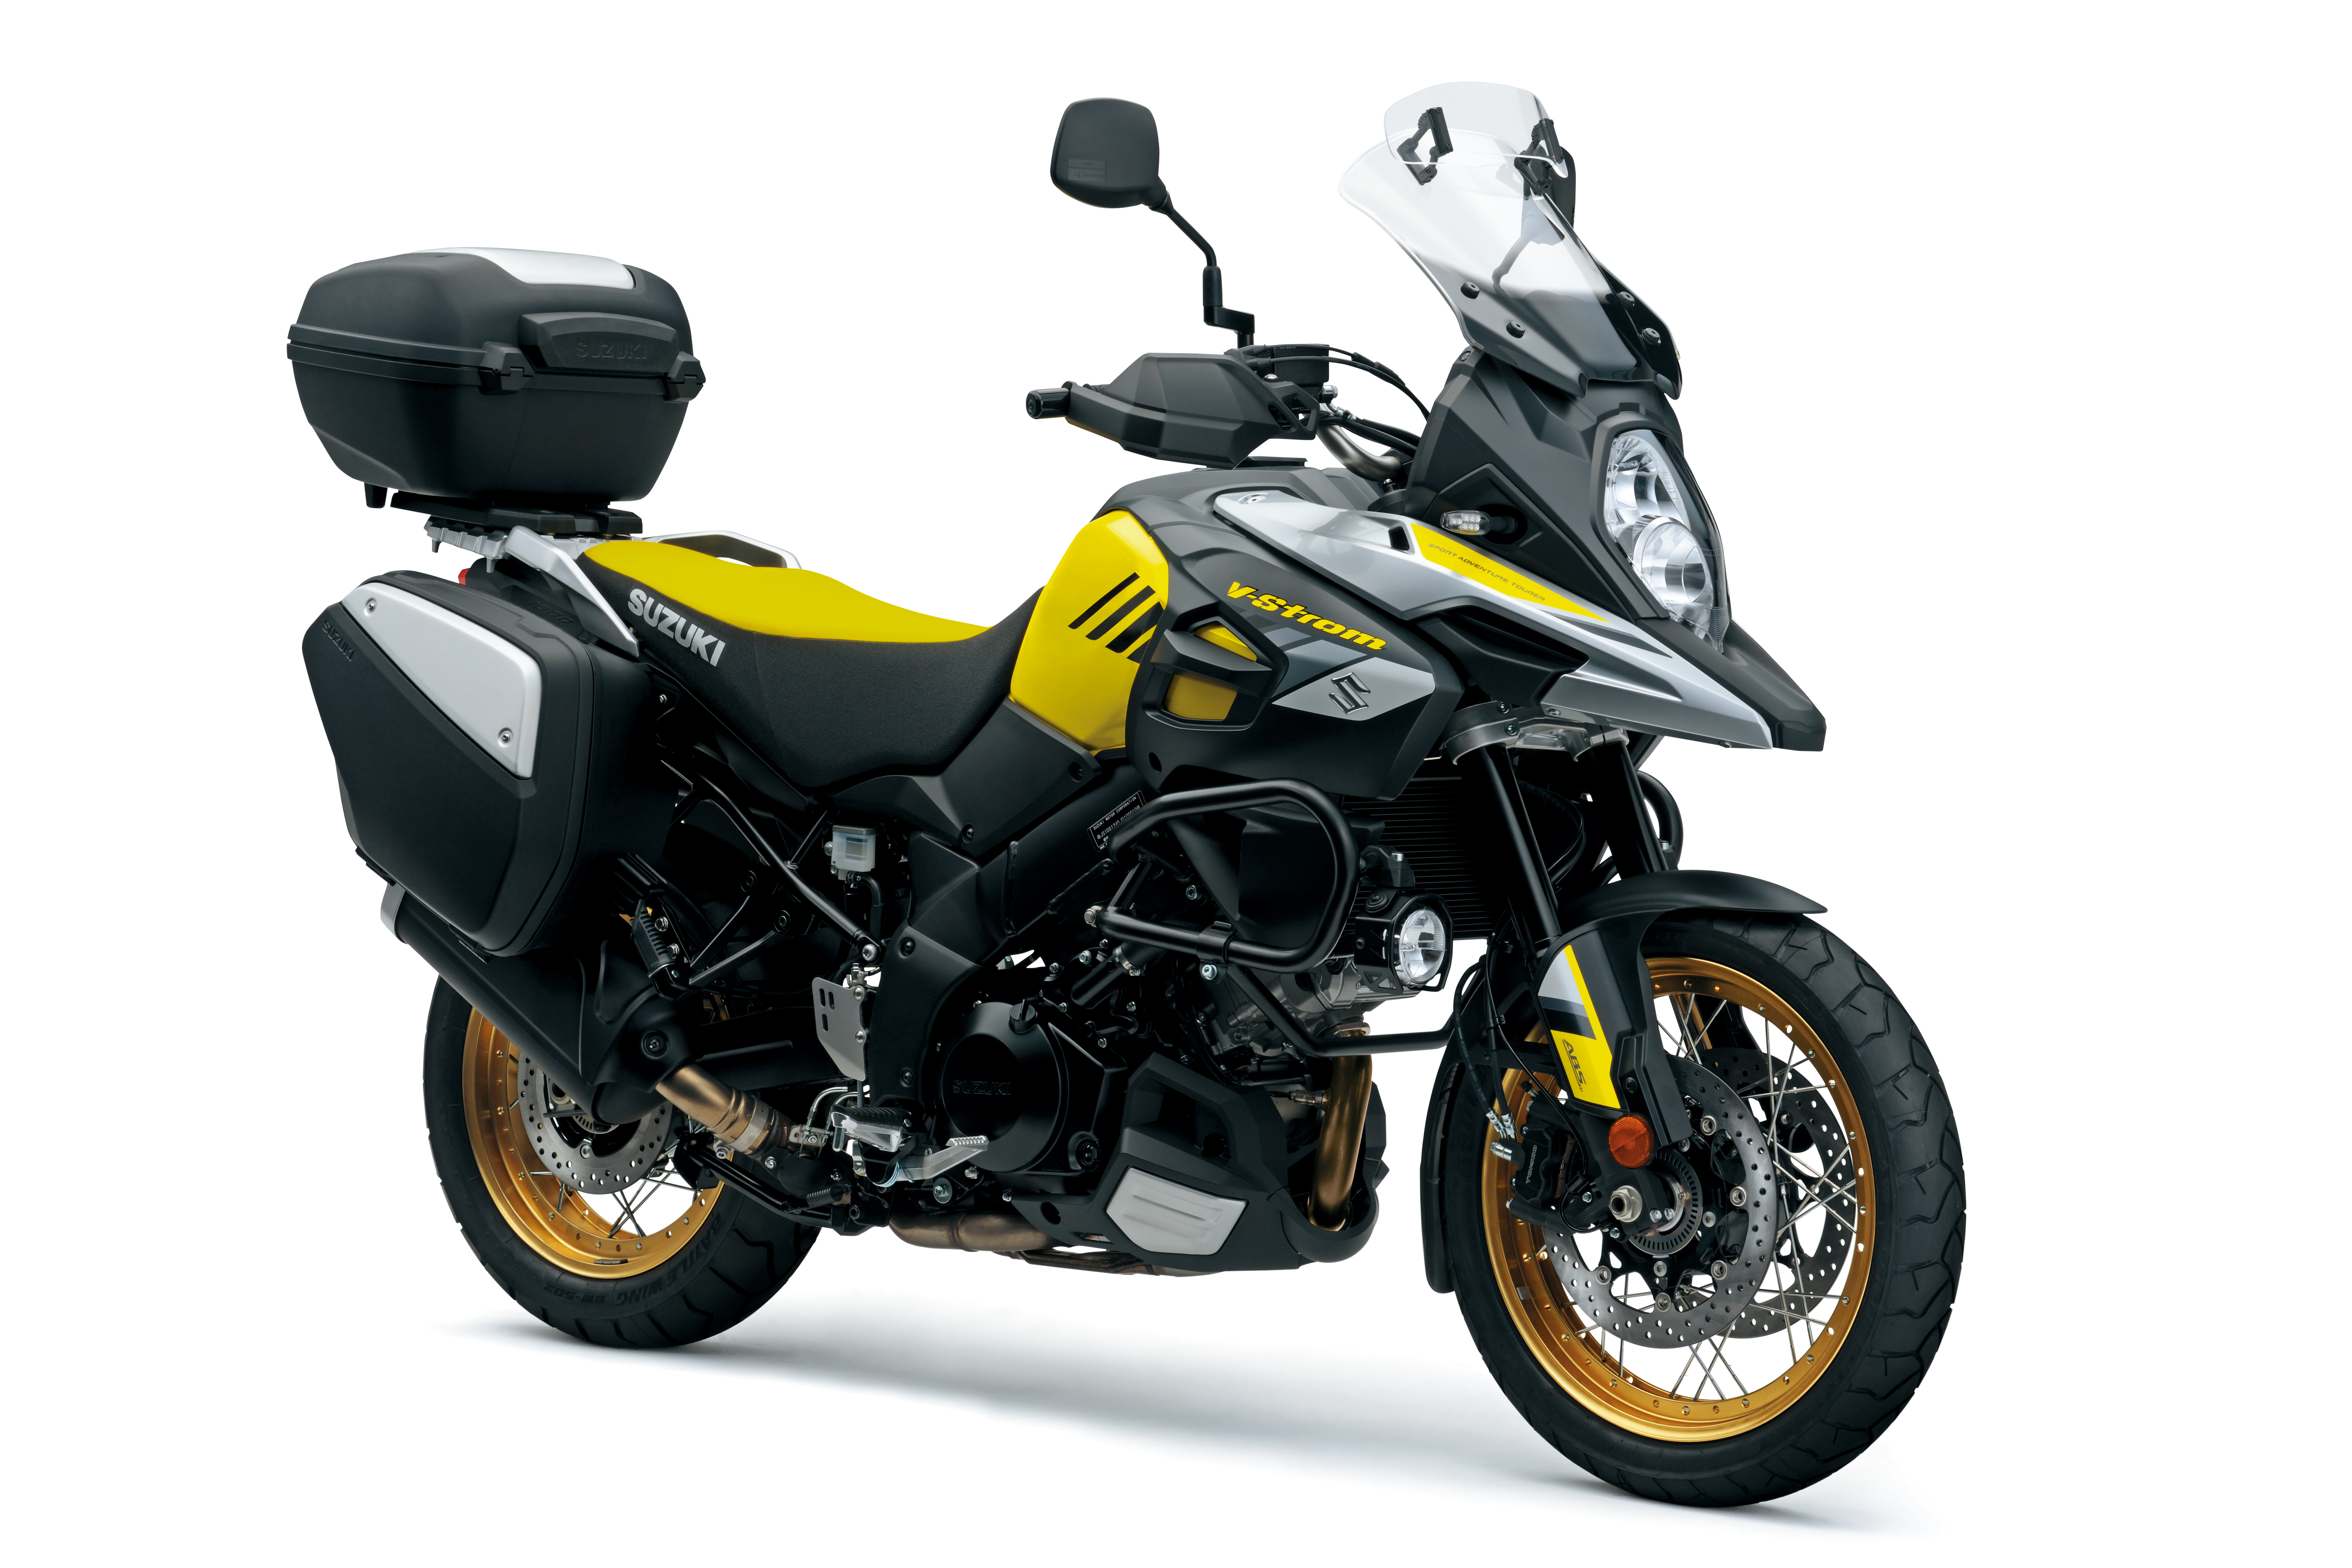 suzuki reveals updated v strom 1000 visordown. Black Bedroom Furniture Sets. Home Design Ideas